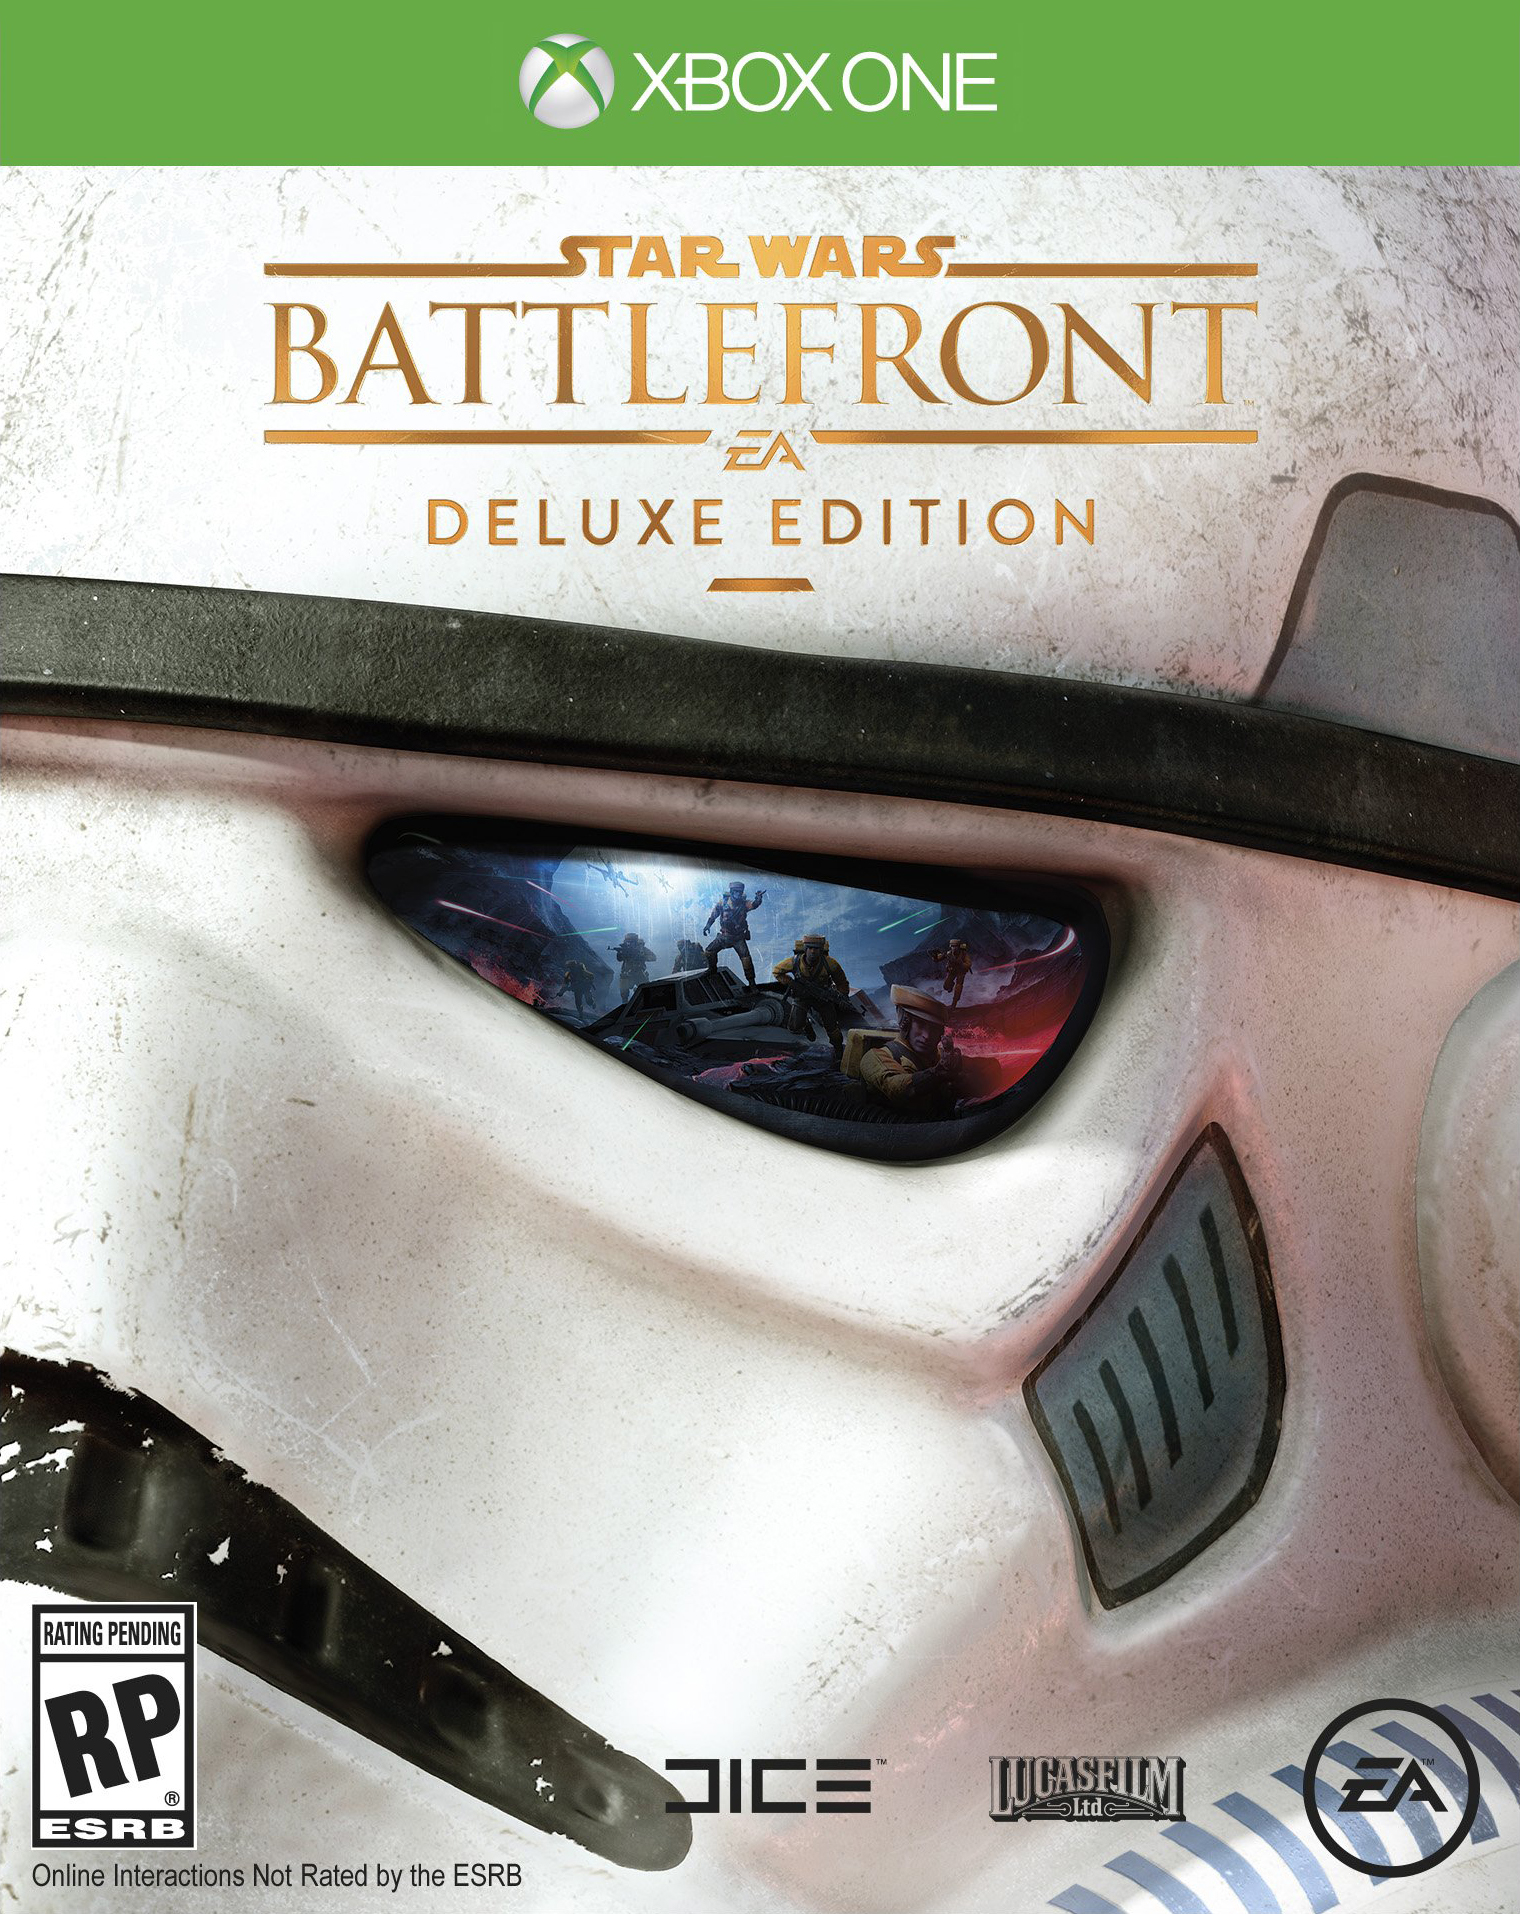 star wars battlefront deluxe edition box art is rather